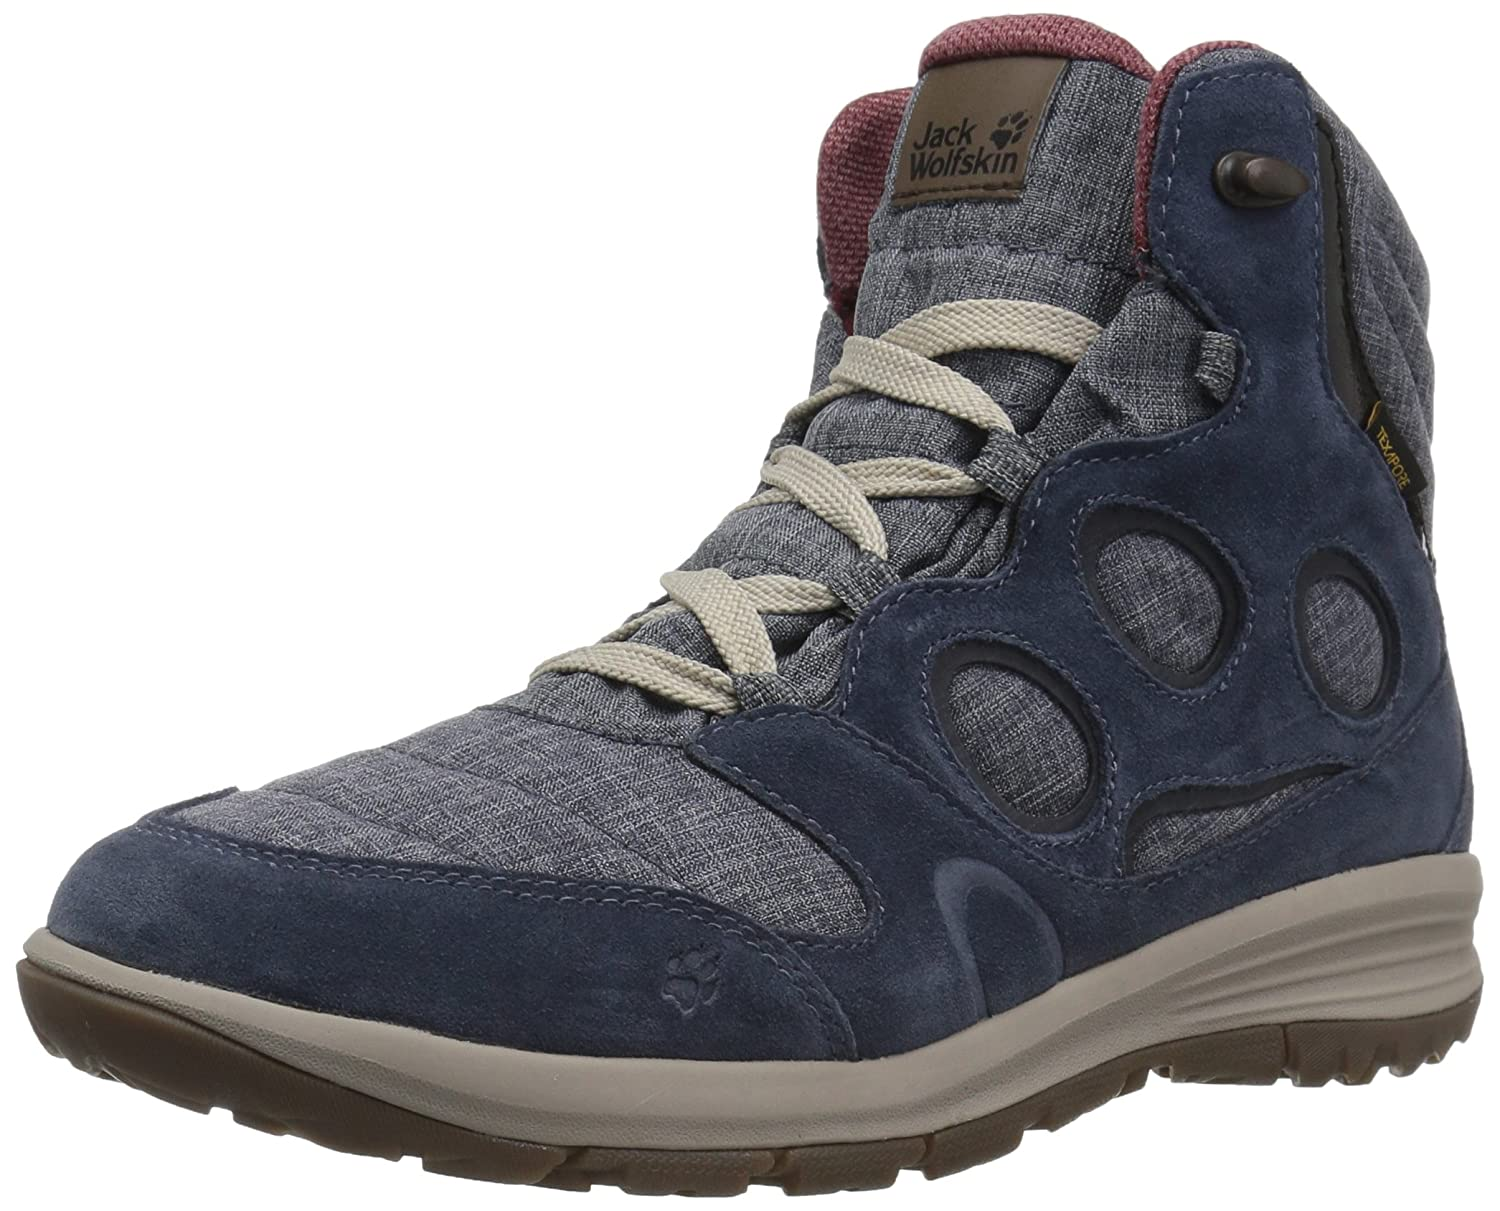 Image of Ankle & Bootie Jack Wolfskin Women's Vancouver Texapore MID W Fashion Boot